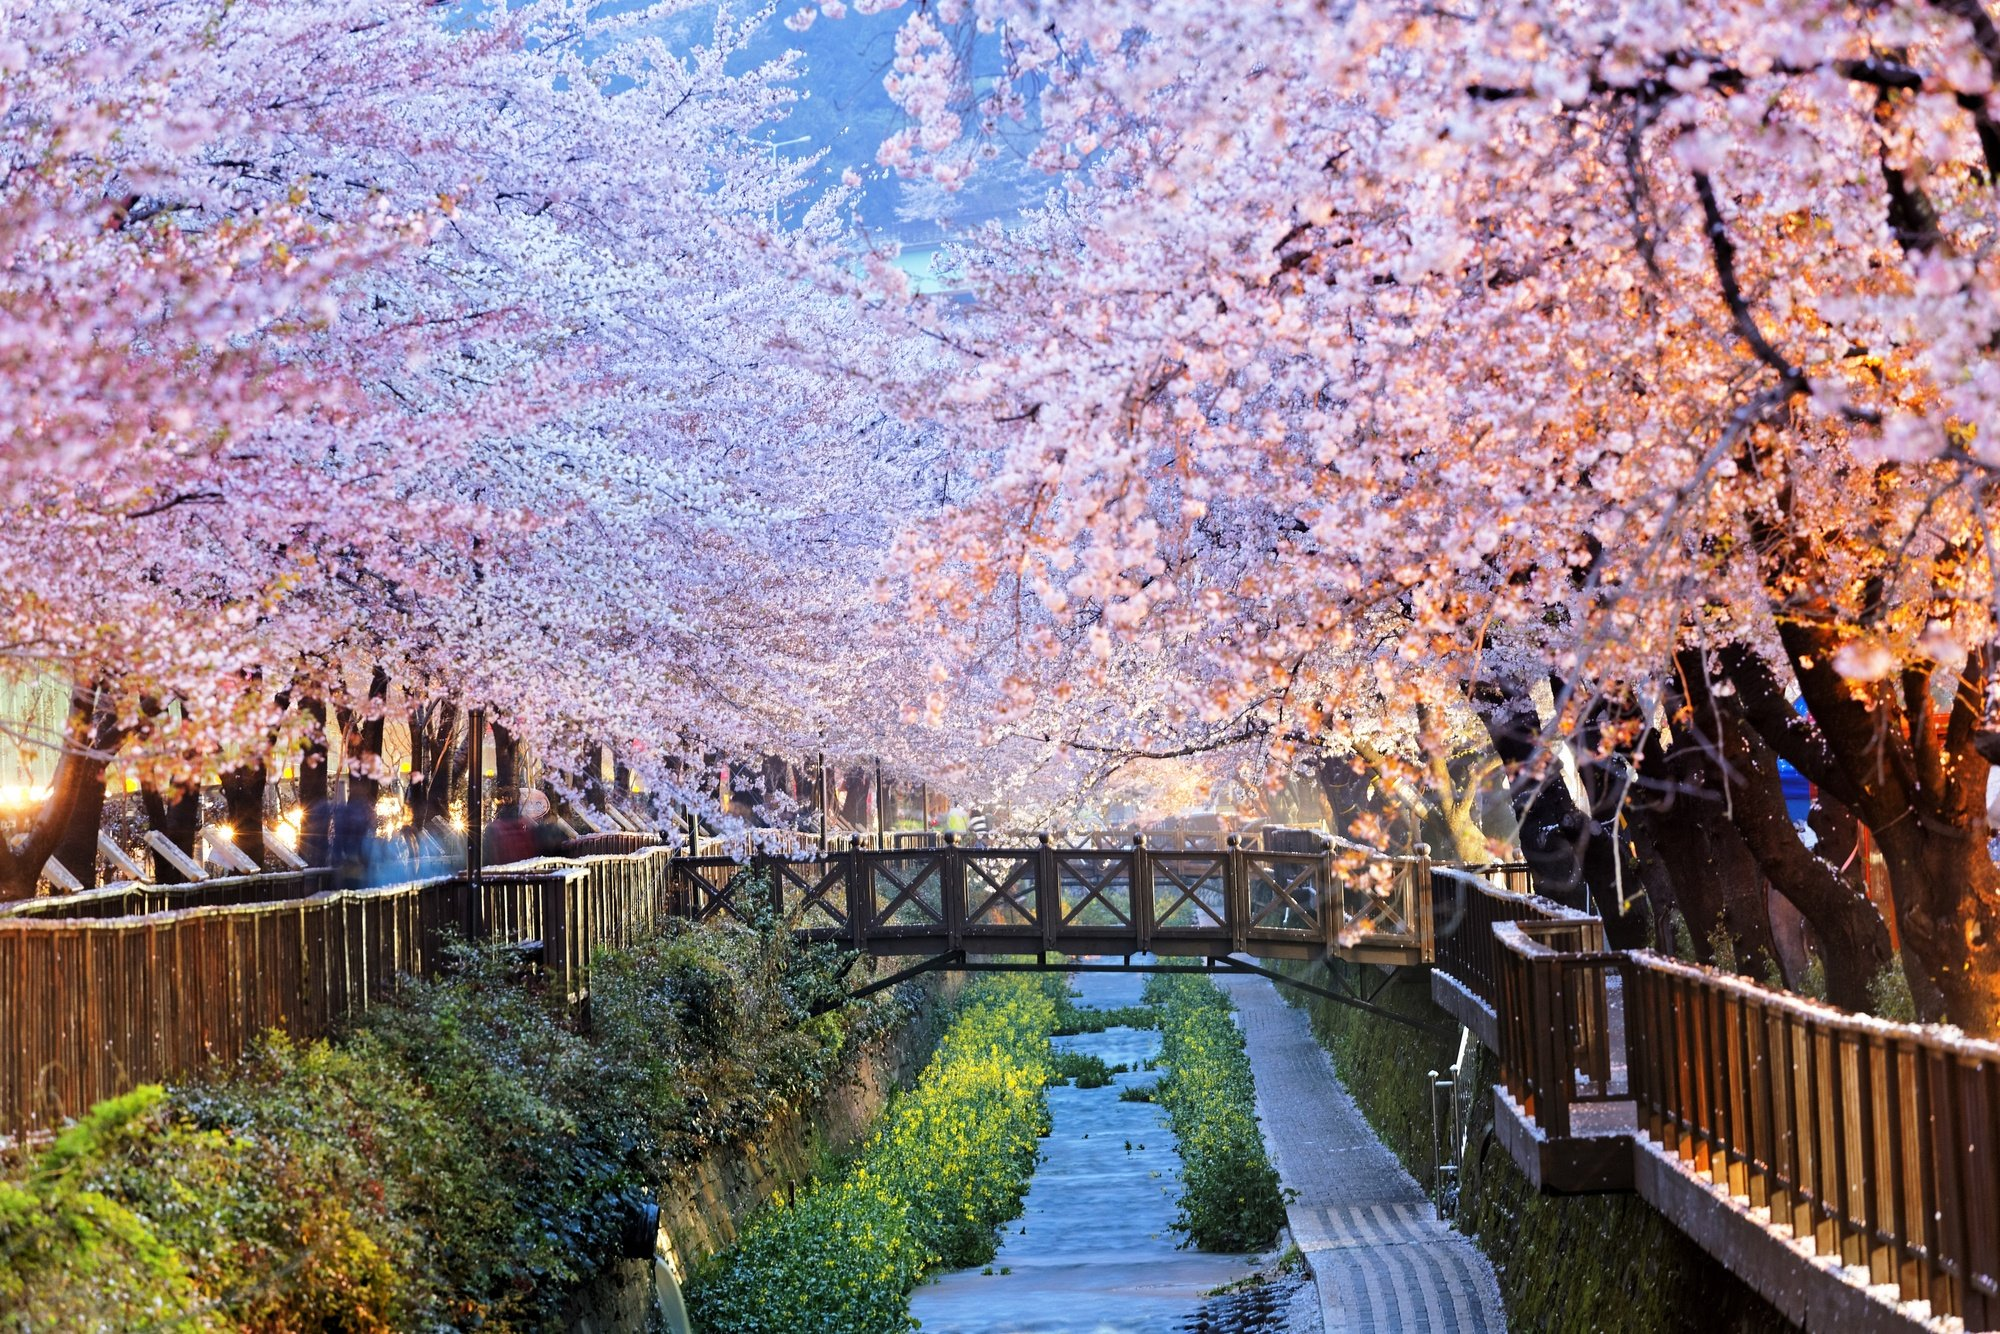 Cherry blossoms in Busan, South Korea